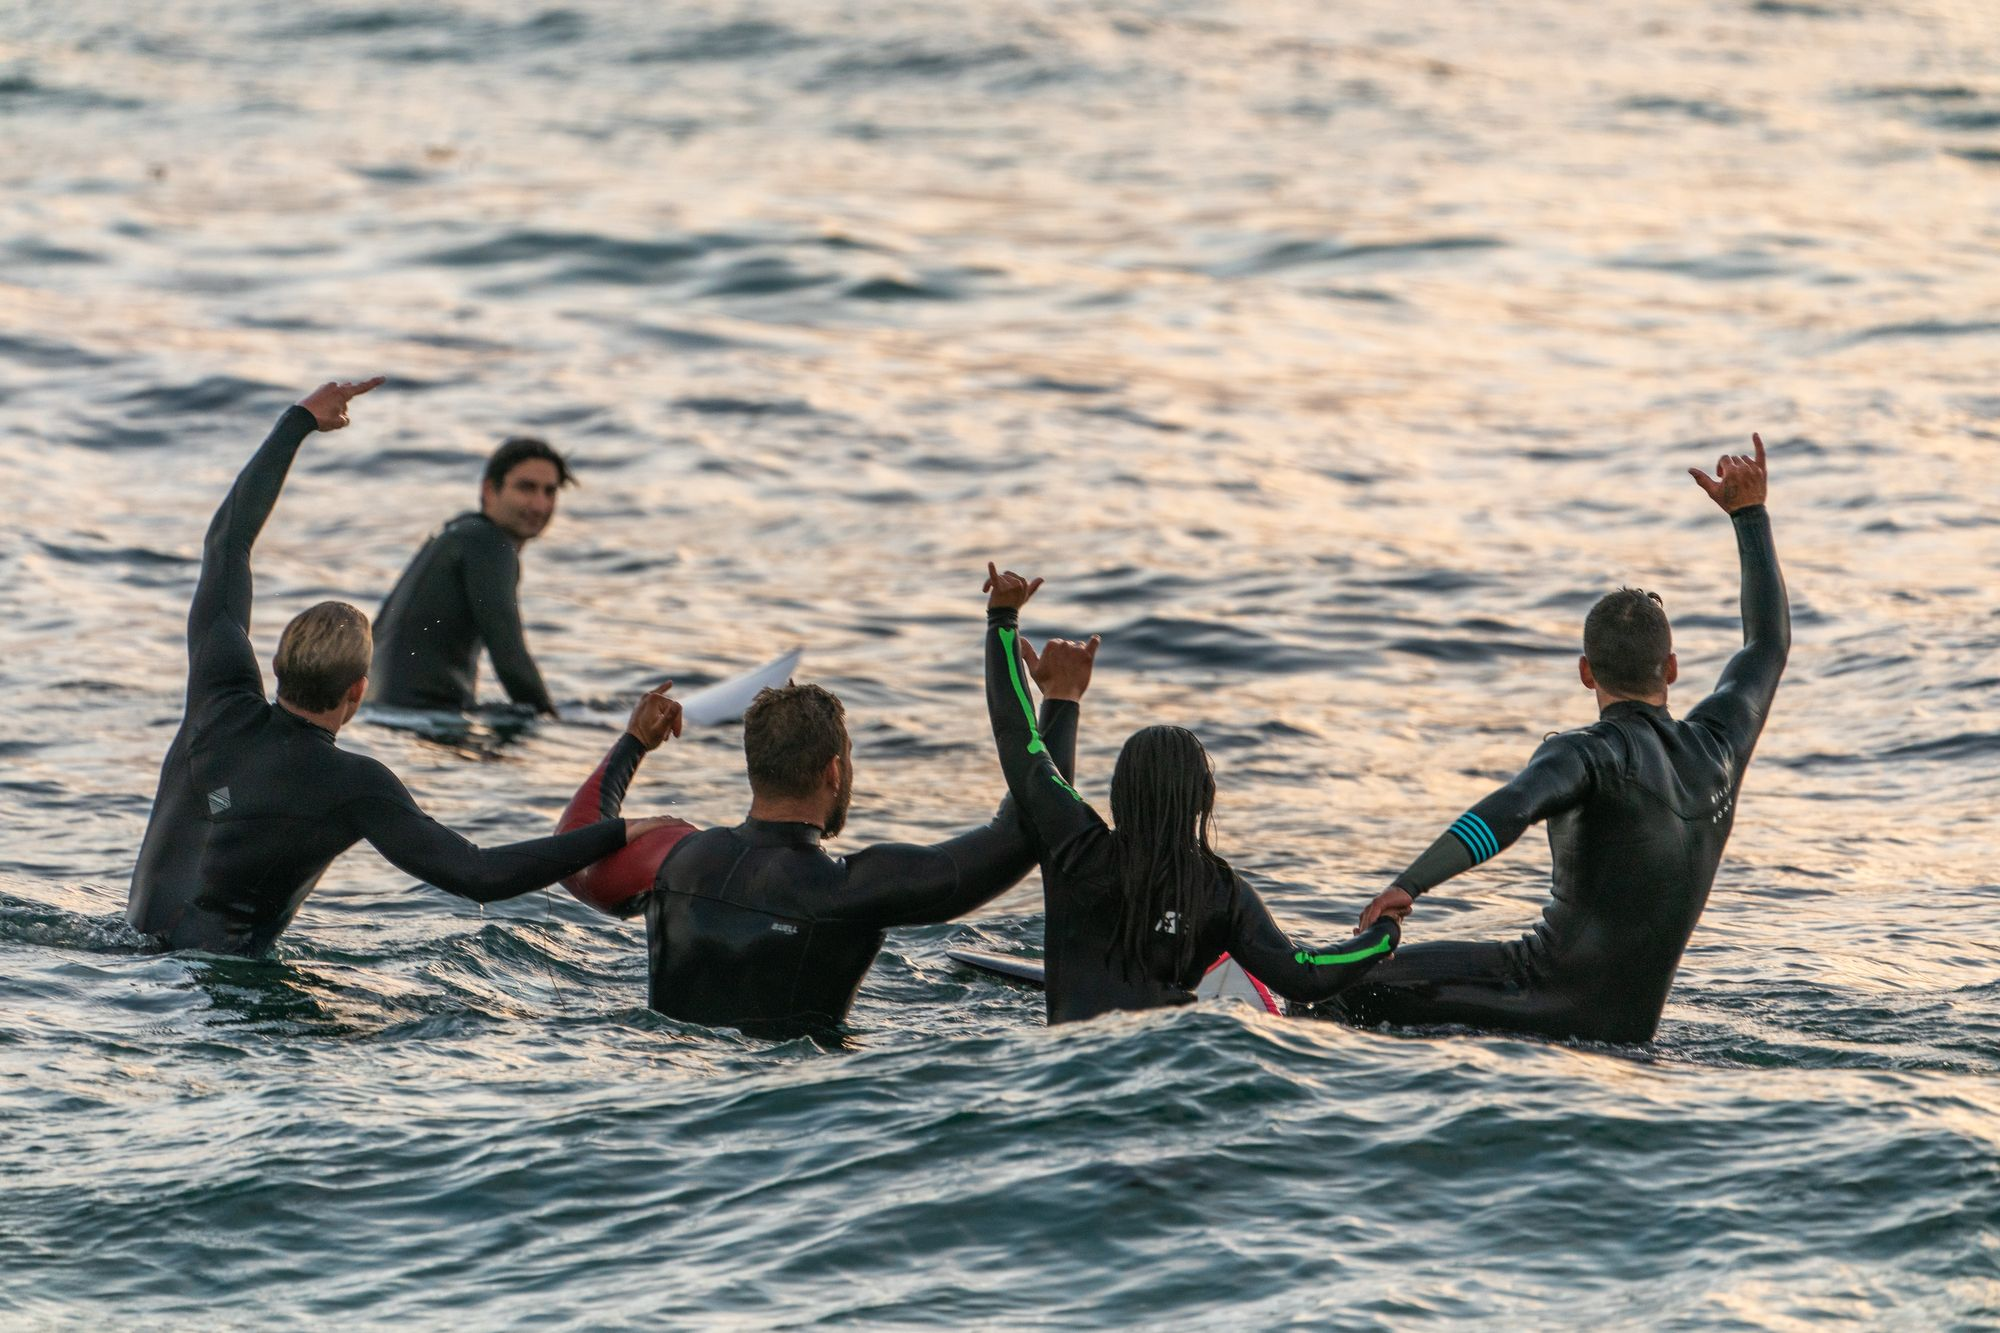 Surfing in the passion economy